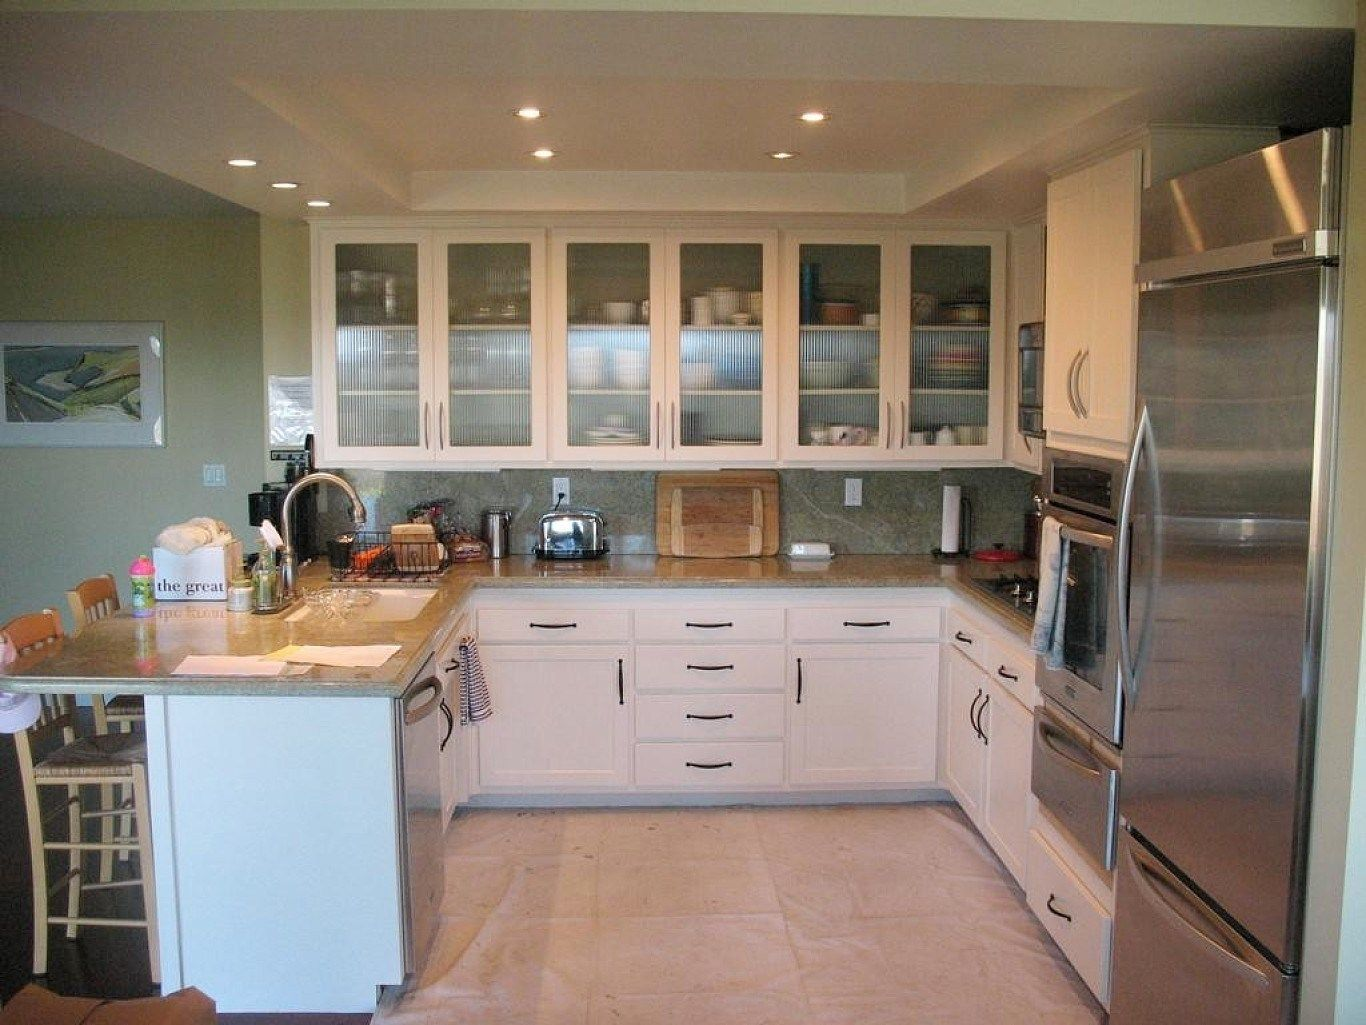 20 Kitchen Cabinet Refacing Ideas In 2020 Options To Refinish Cabinets Glass Kitchen Cabinet Doors Glass Kitchen Cabinets Replacing Kitchen Cabinets